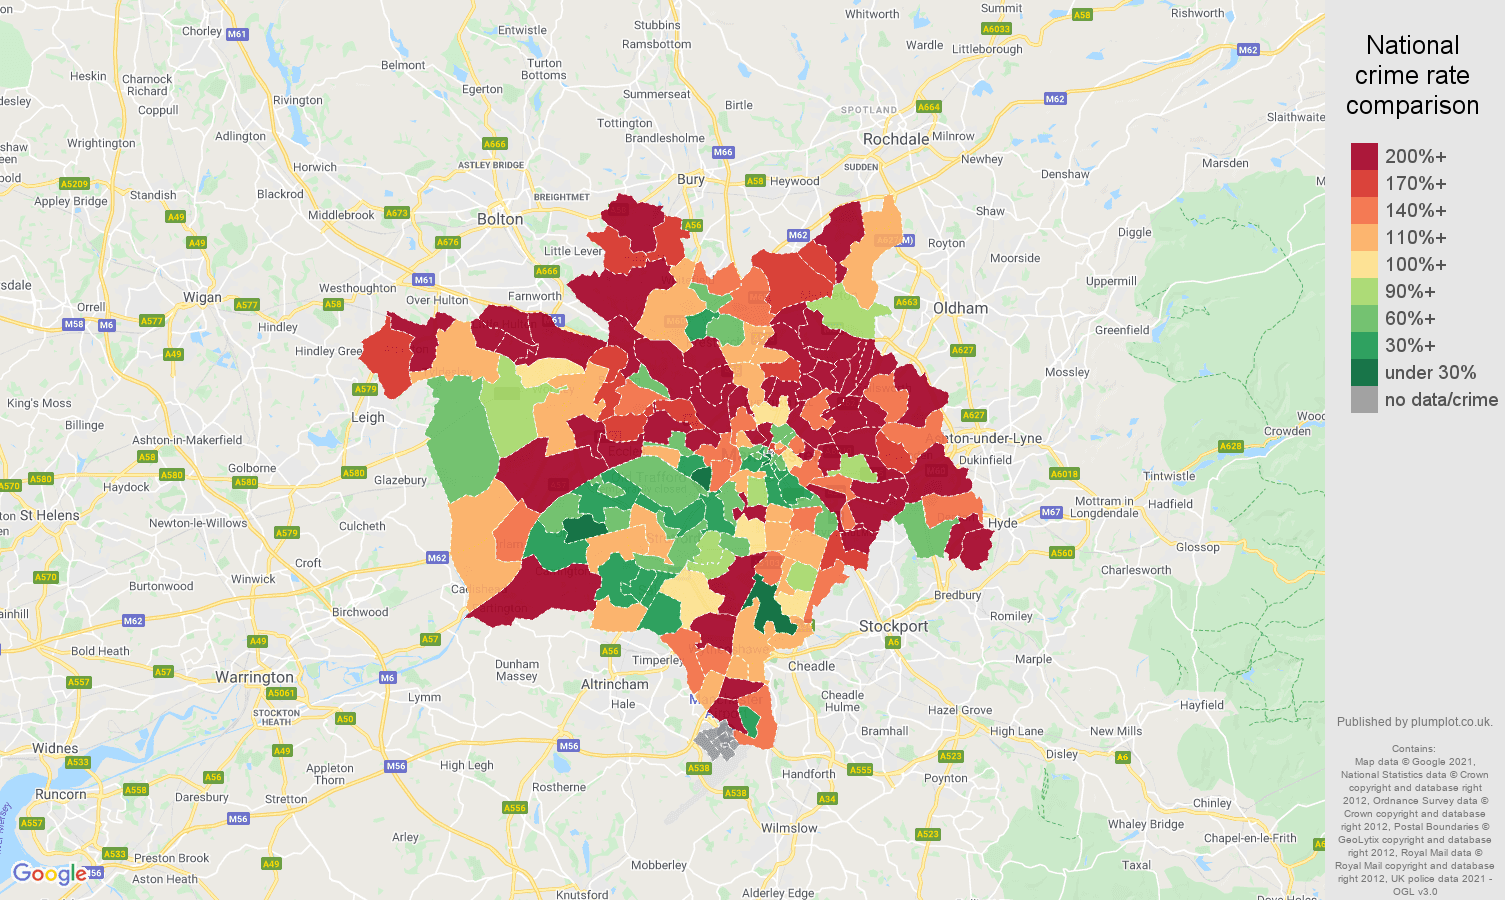 Manchester other crime rate comparison map